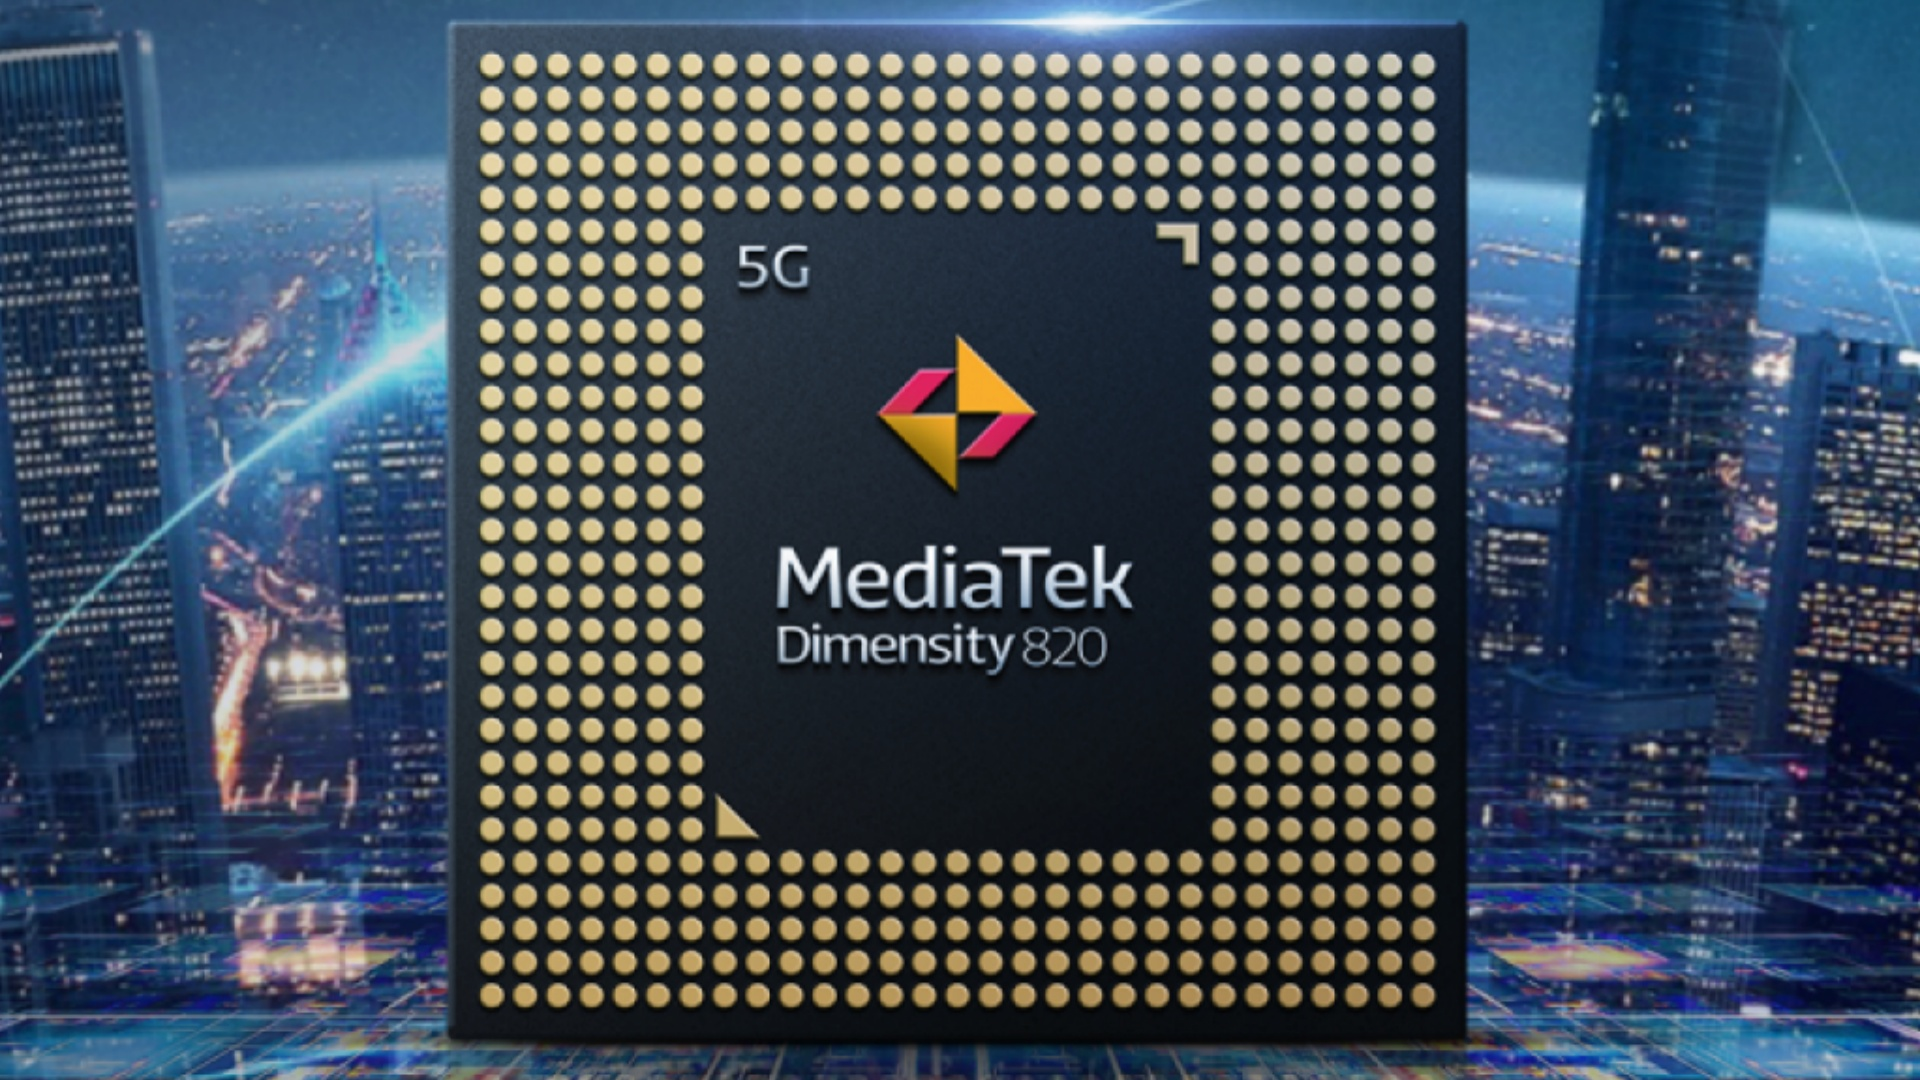 MediaTek Dimensity 820 5G SoC With Up To 80MP Camera Support Announced